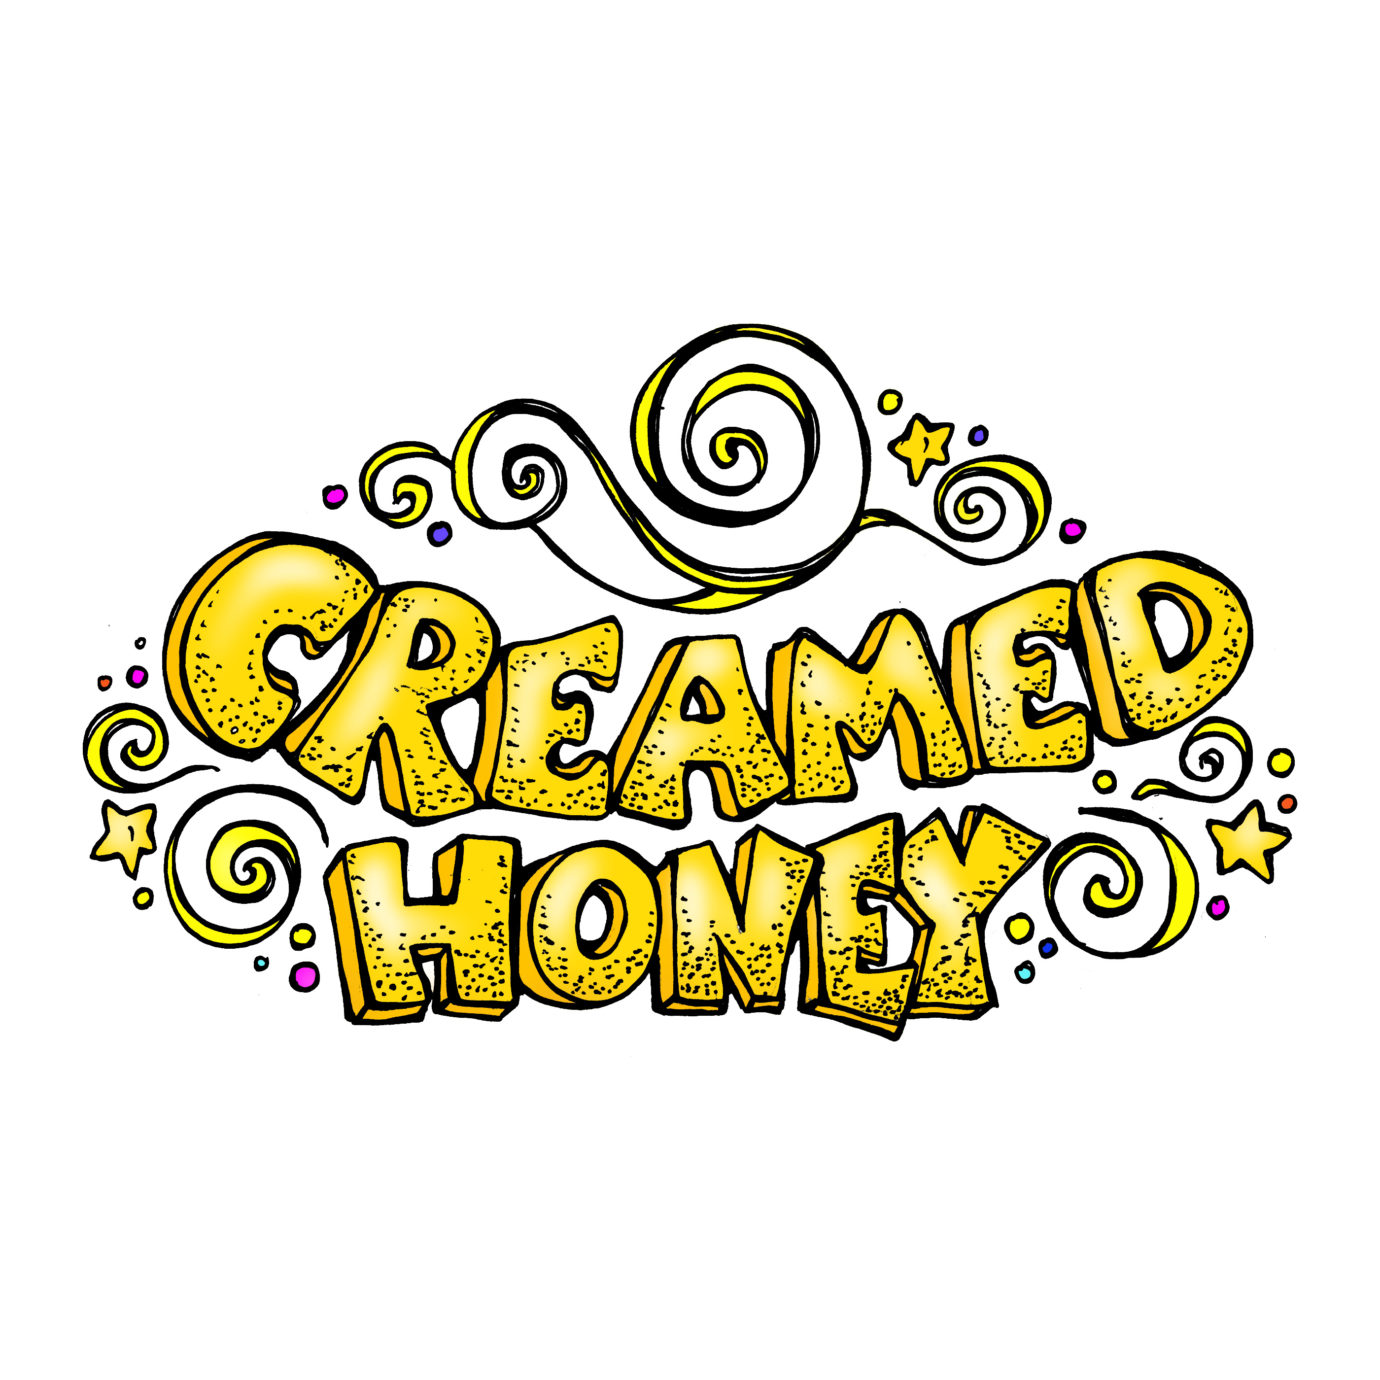 What next for creamed honey?